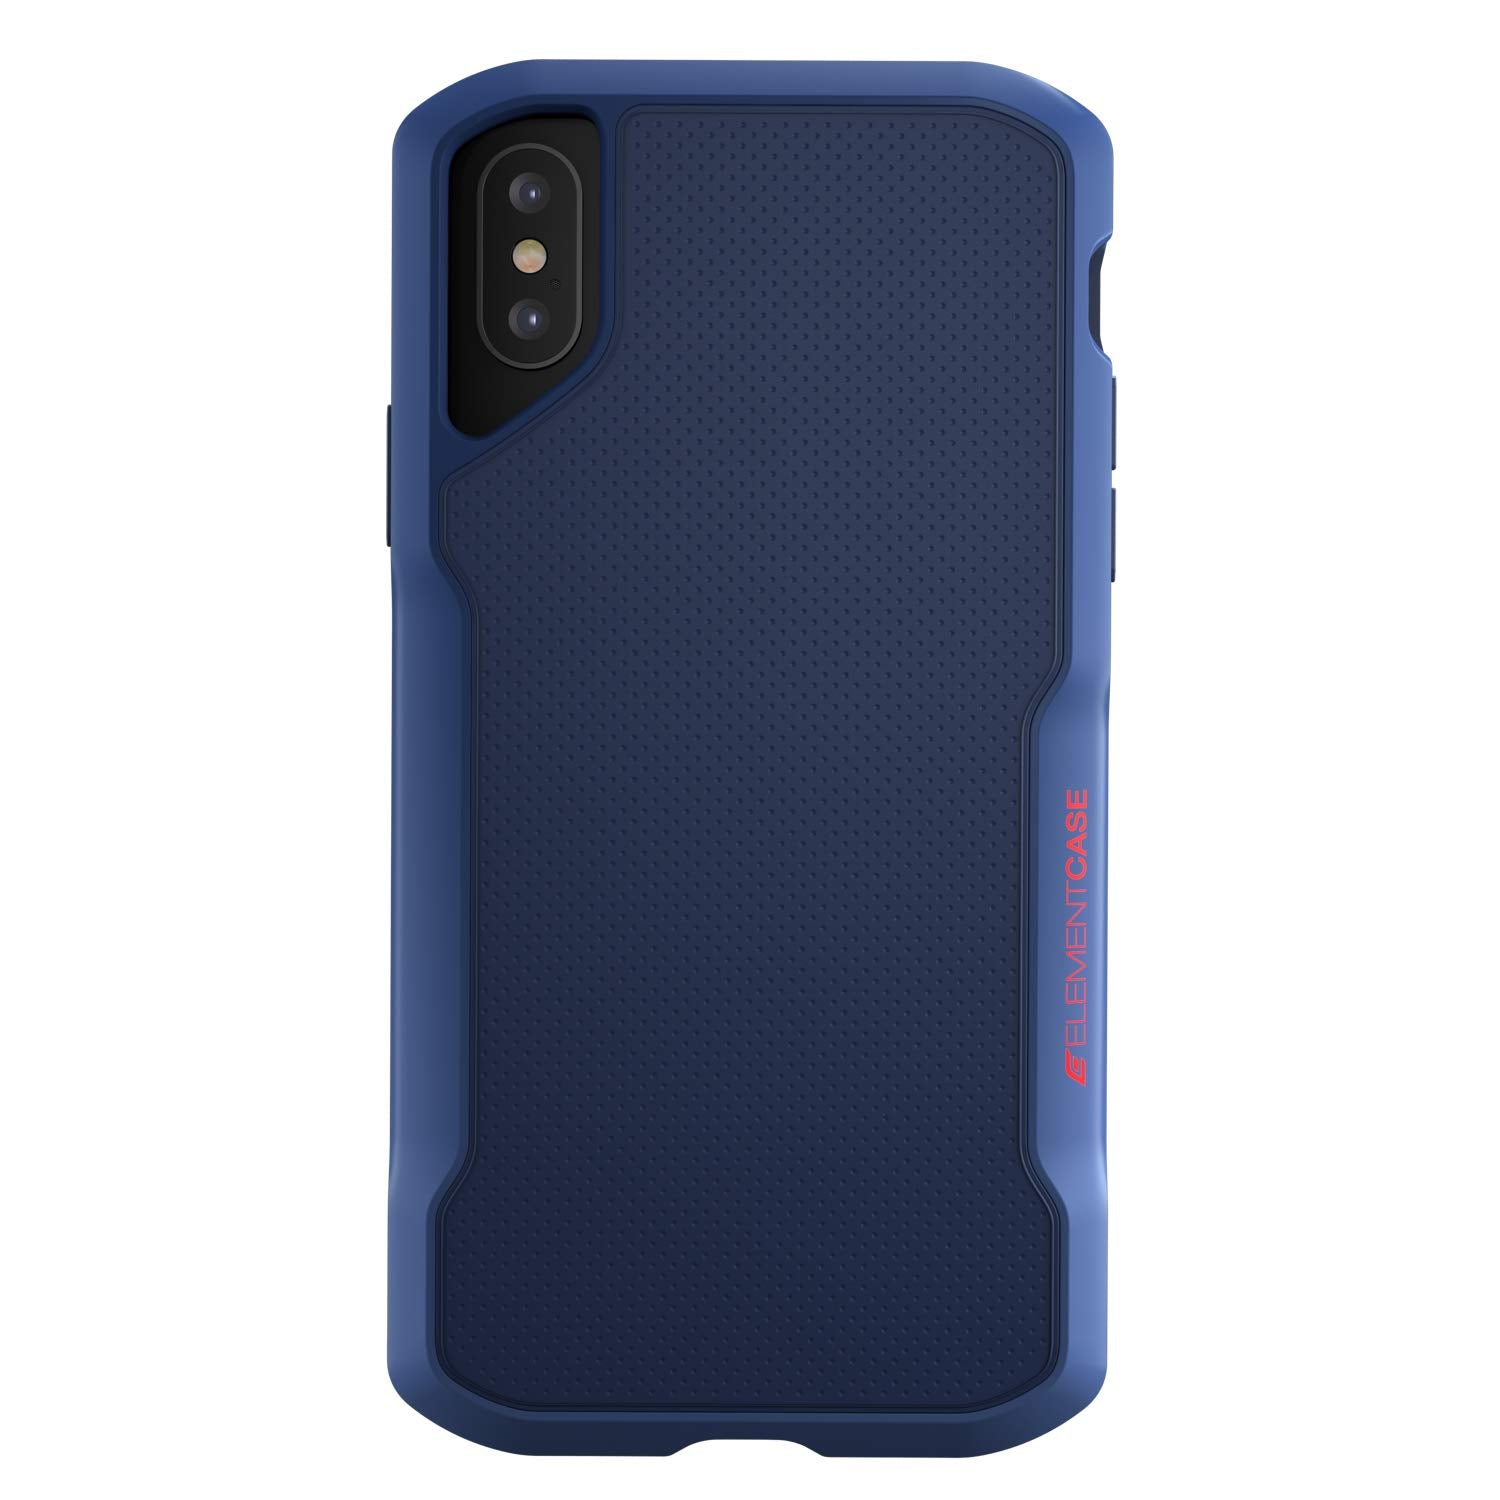 Element Case Shadow Drop Tested case for iPhone iPhone Xs/X (Blue) get best offers deals free online at buythevalue.in